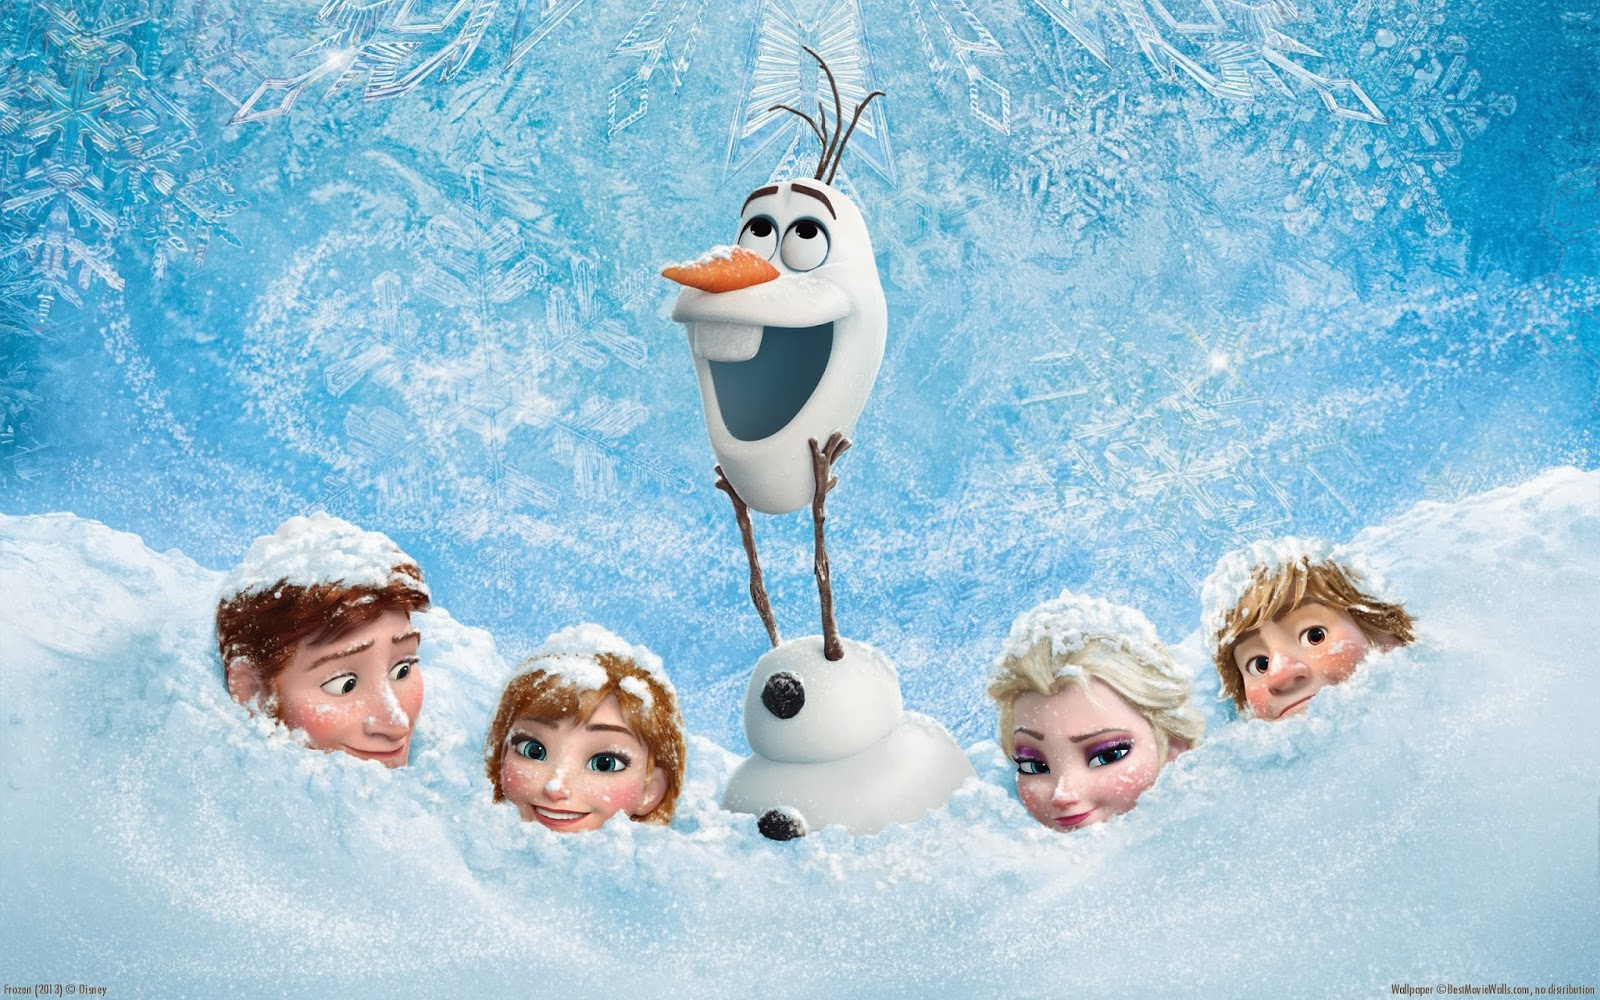 work as the voice of Olaf.